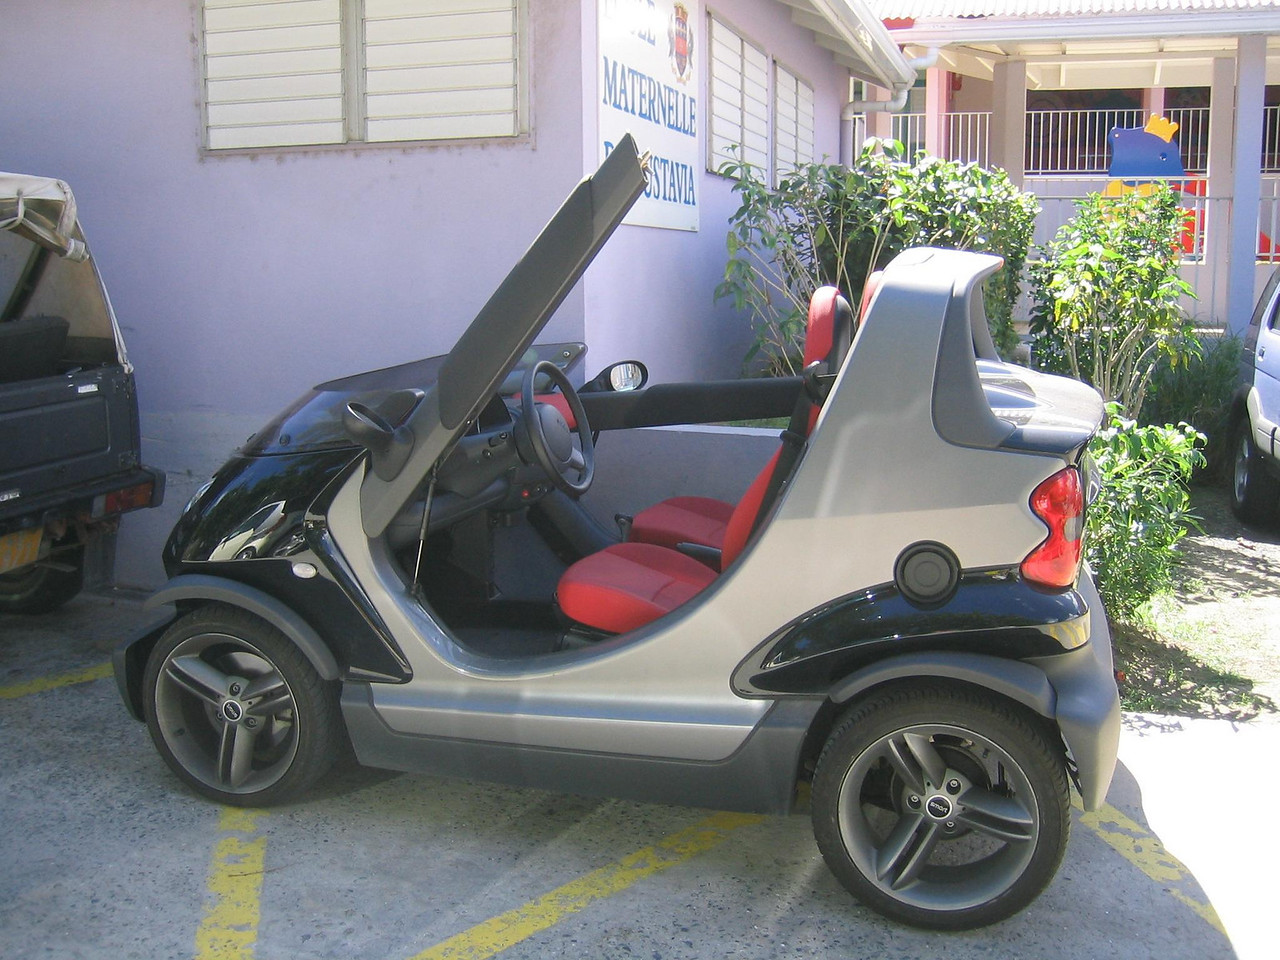 A Smart Car in Gustavia.